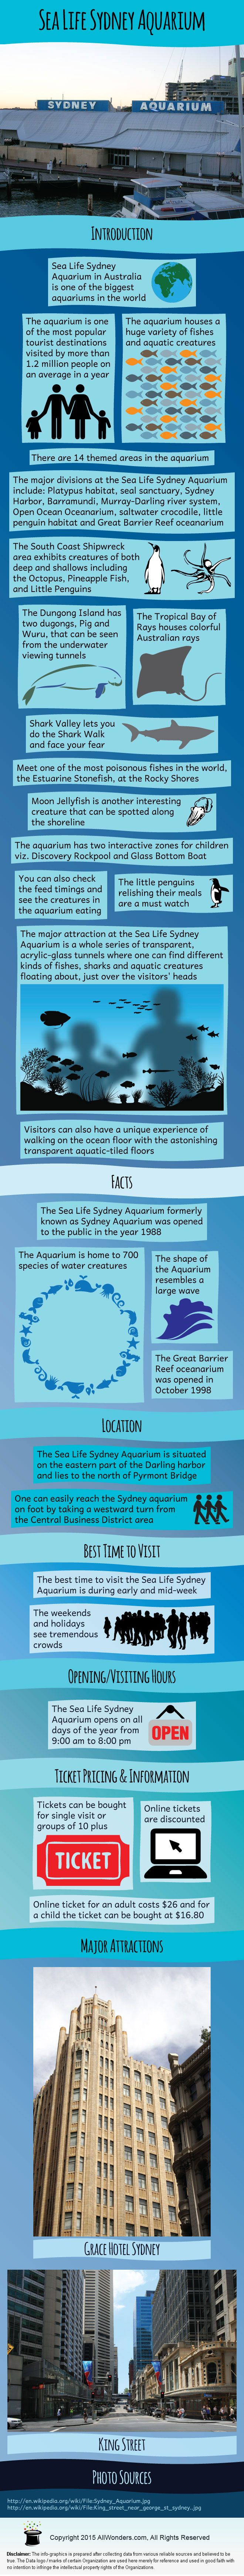 Infographic showing Facts and Information about Sea Life Sydney Aquarium. Also know about its location, best time to visit, nearby attractions etc.